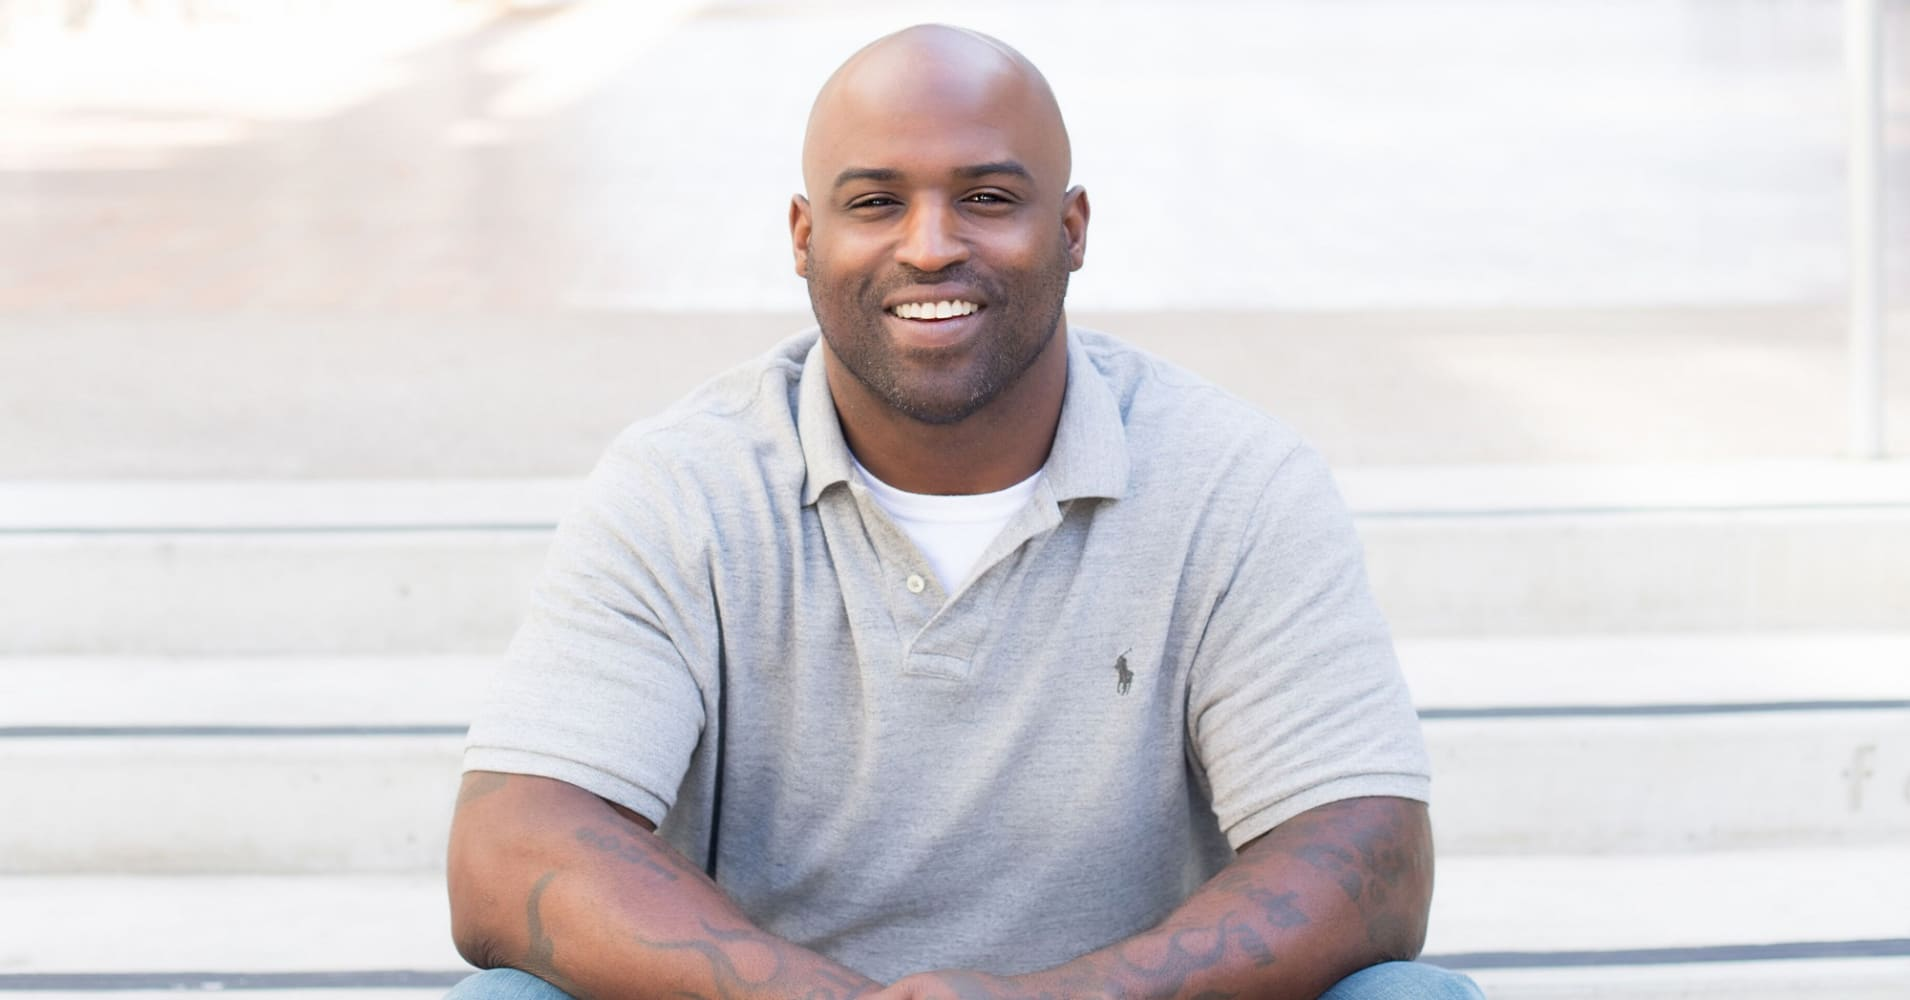 Astrology is telling ex-NFL star Ricky Williams to invest in Bitcoin